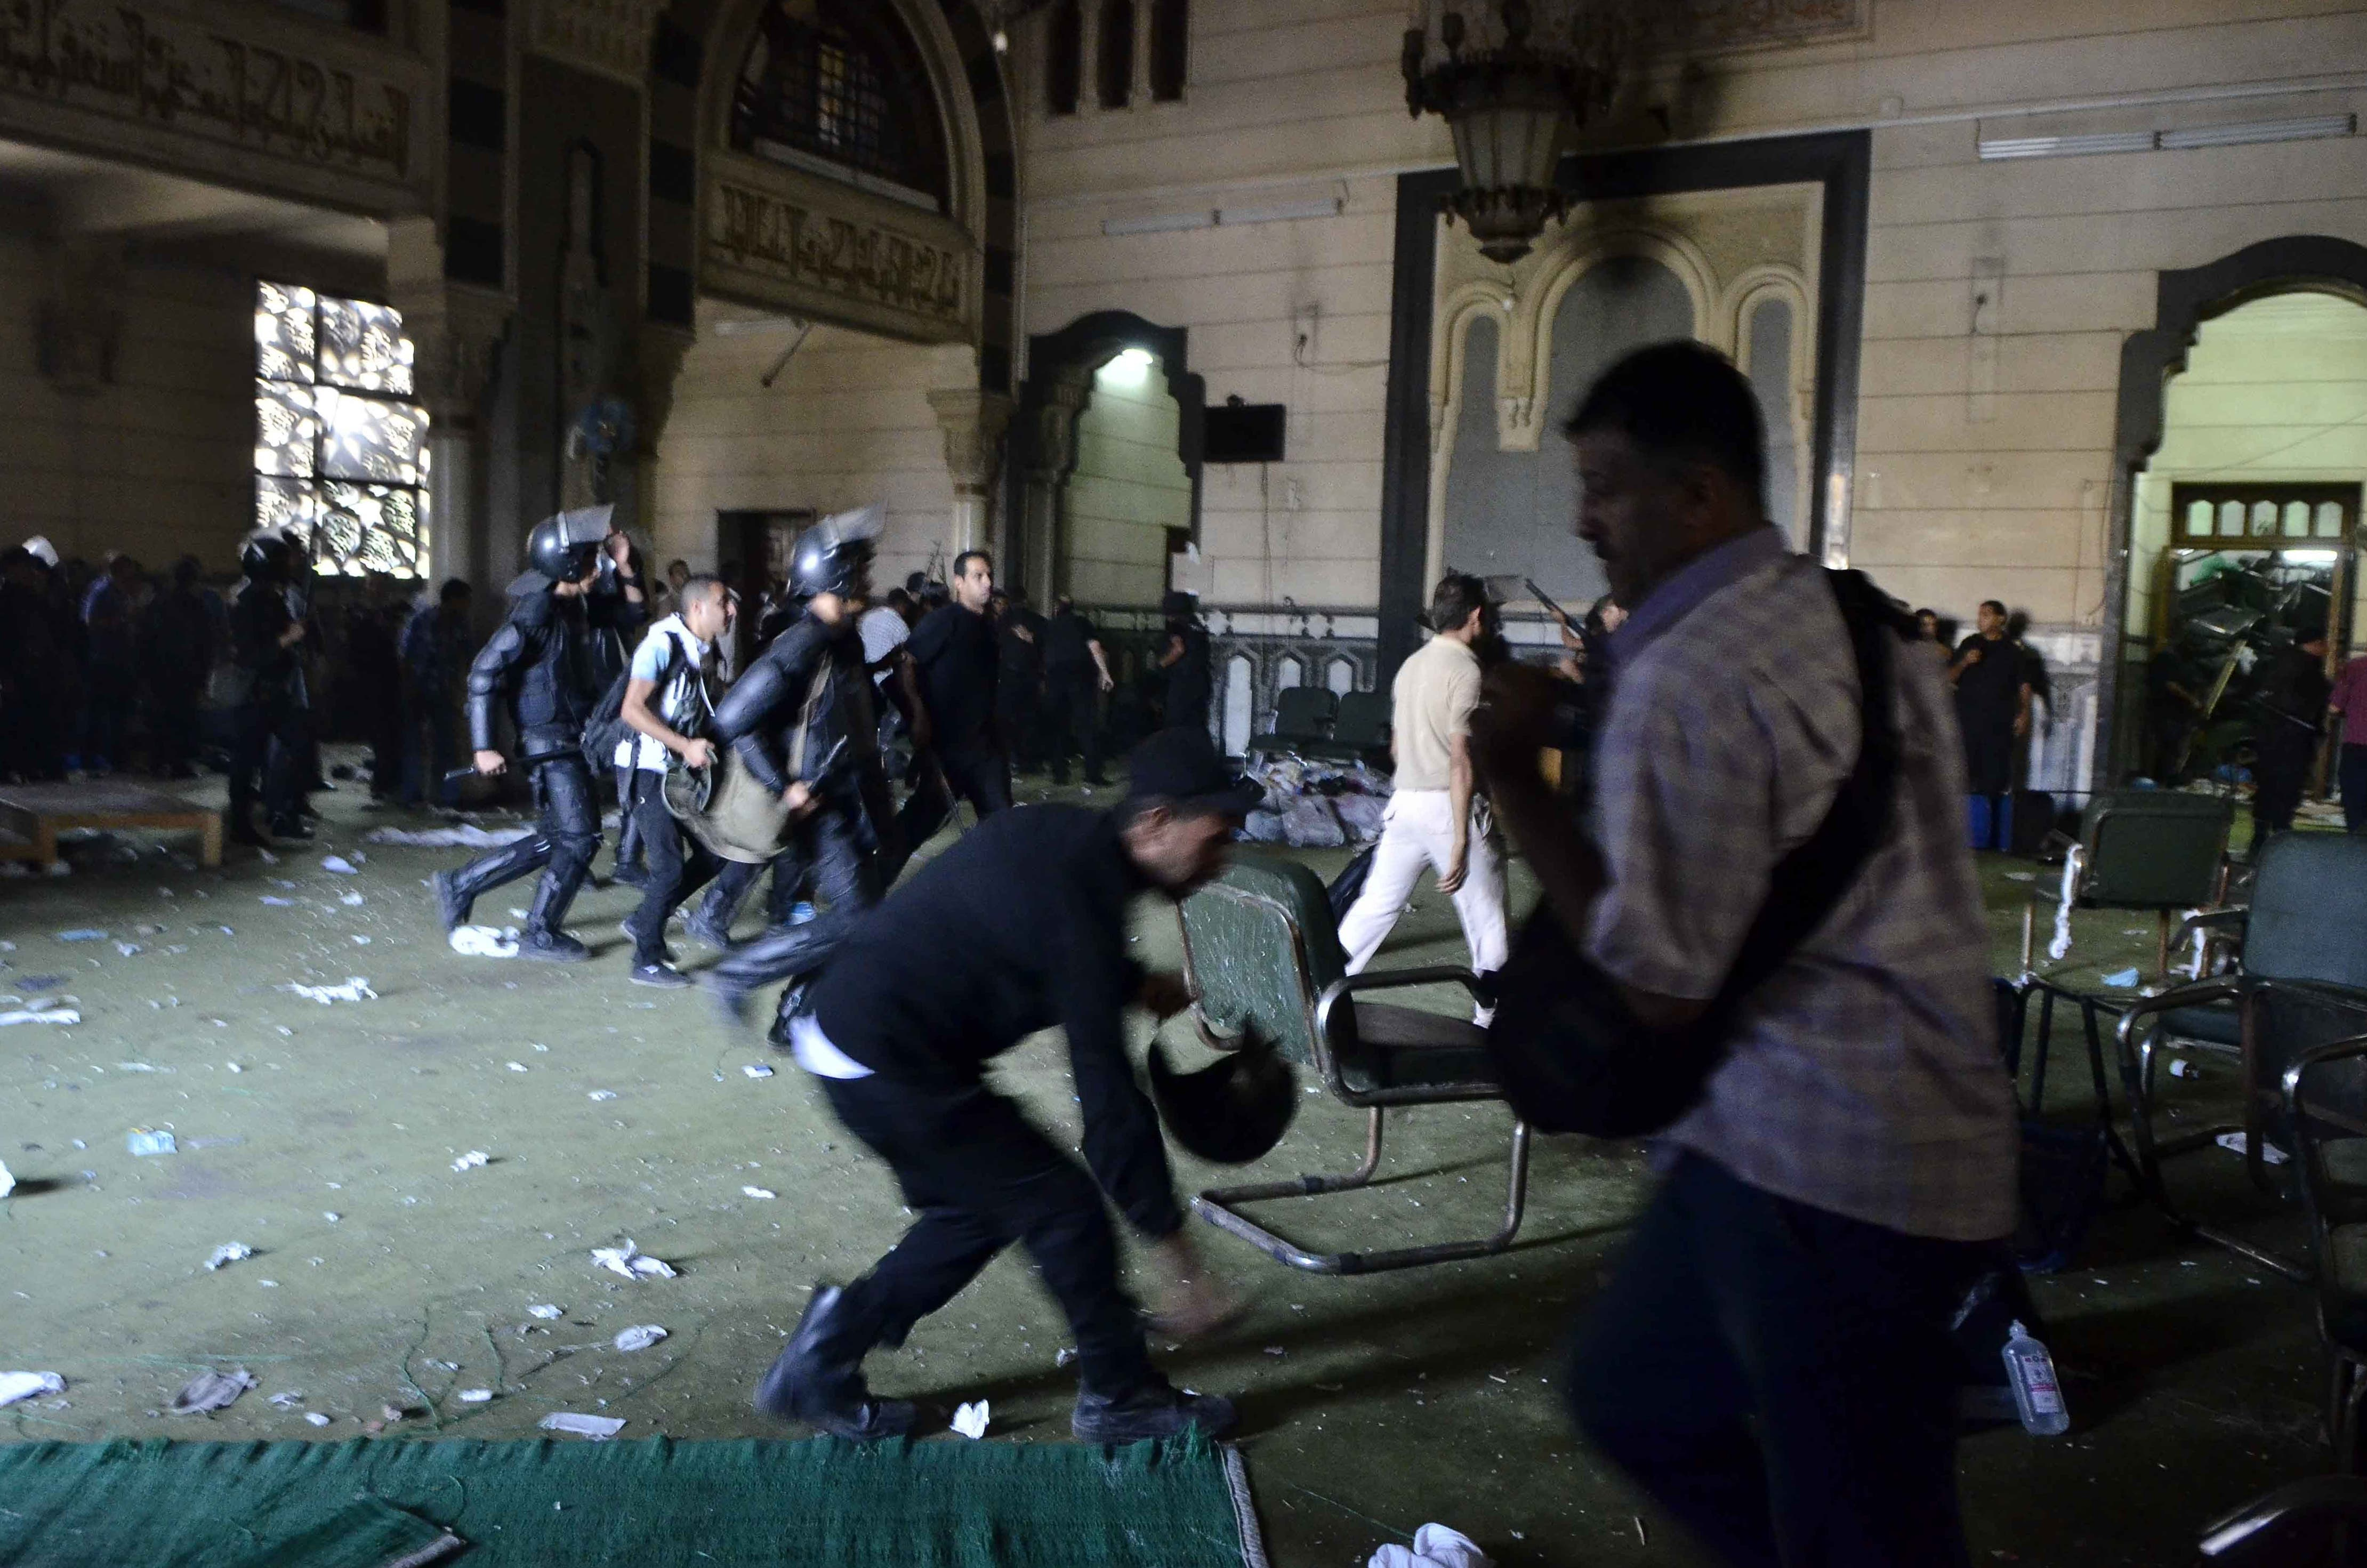 Egyptian riot policemen get in the community services hall of Cairo's Al-Fath mosque where Islamist supporters of ousted president Mohamed Morsi held up (AFP/MOHAMED EL-SHAHED)